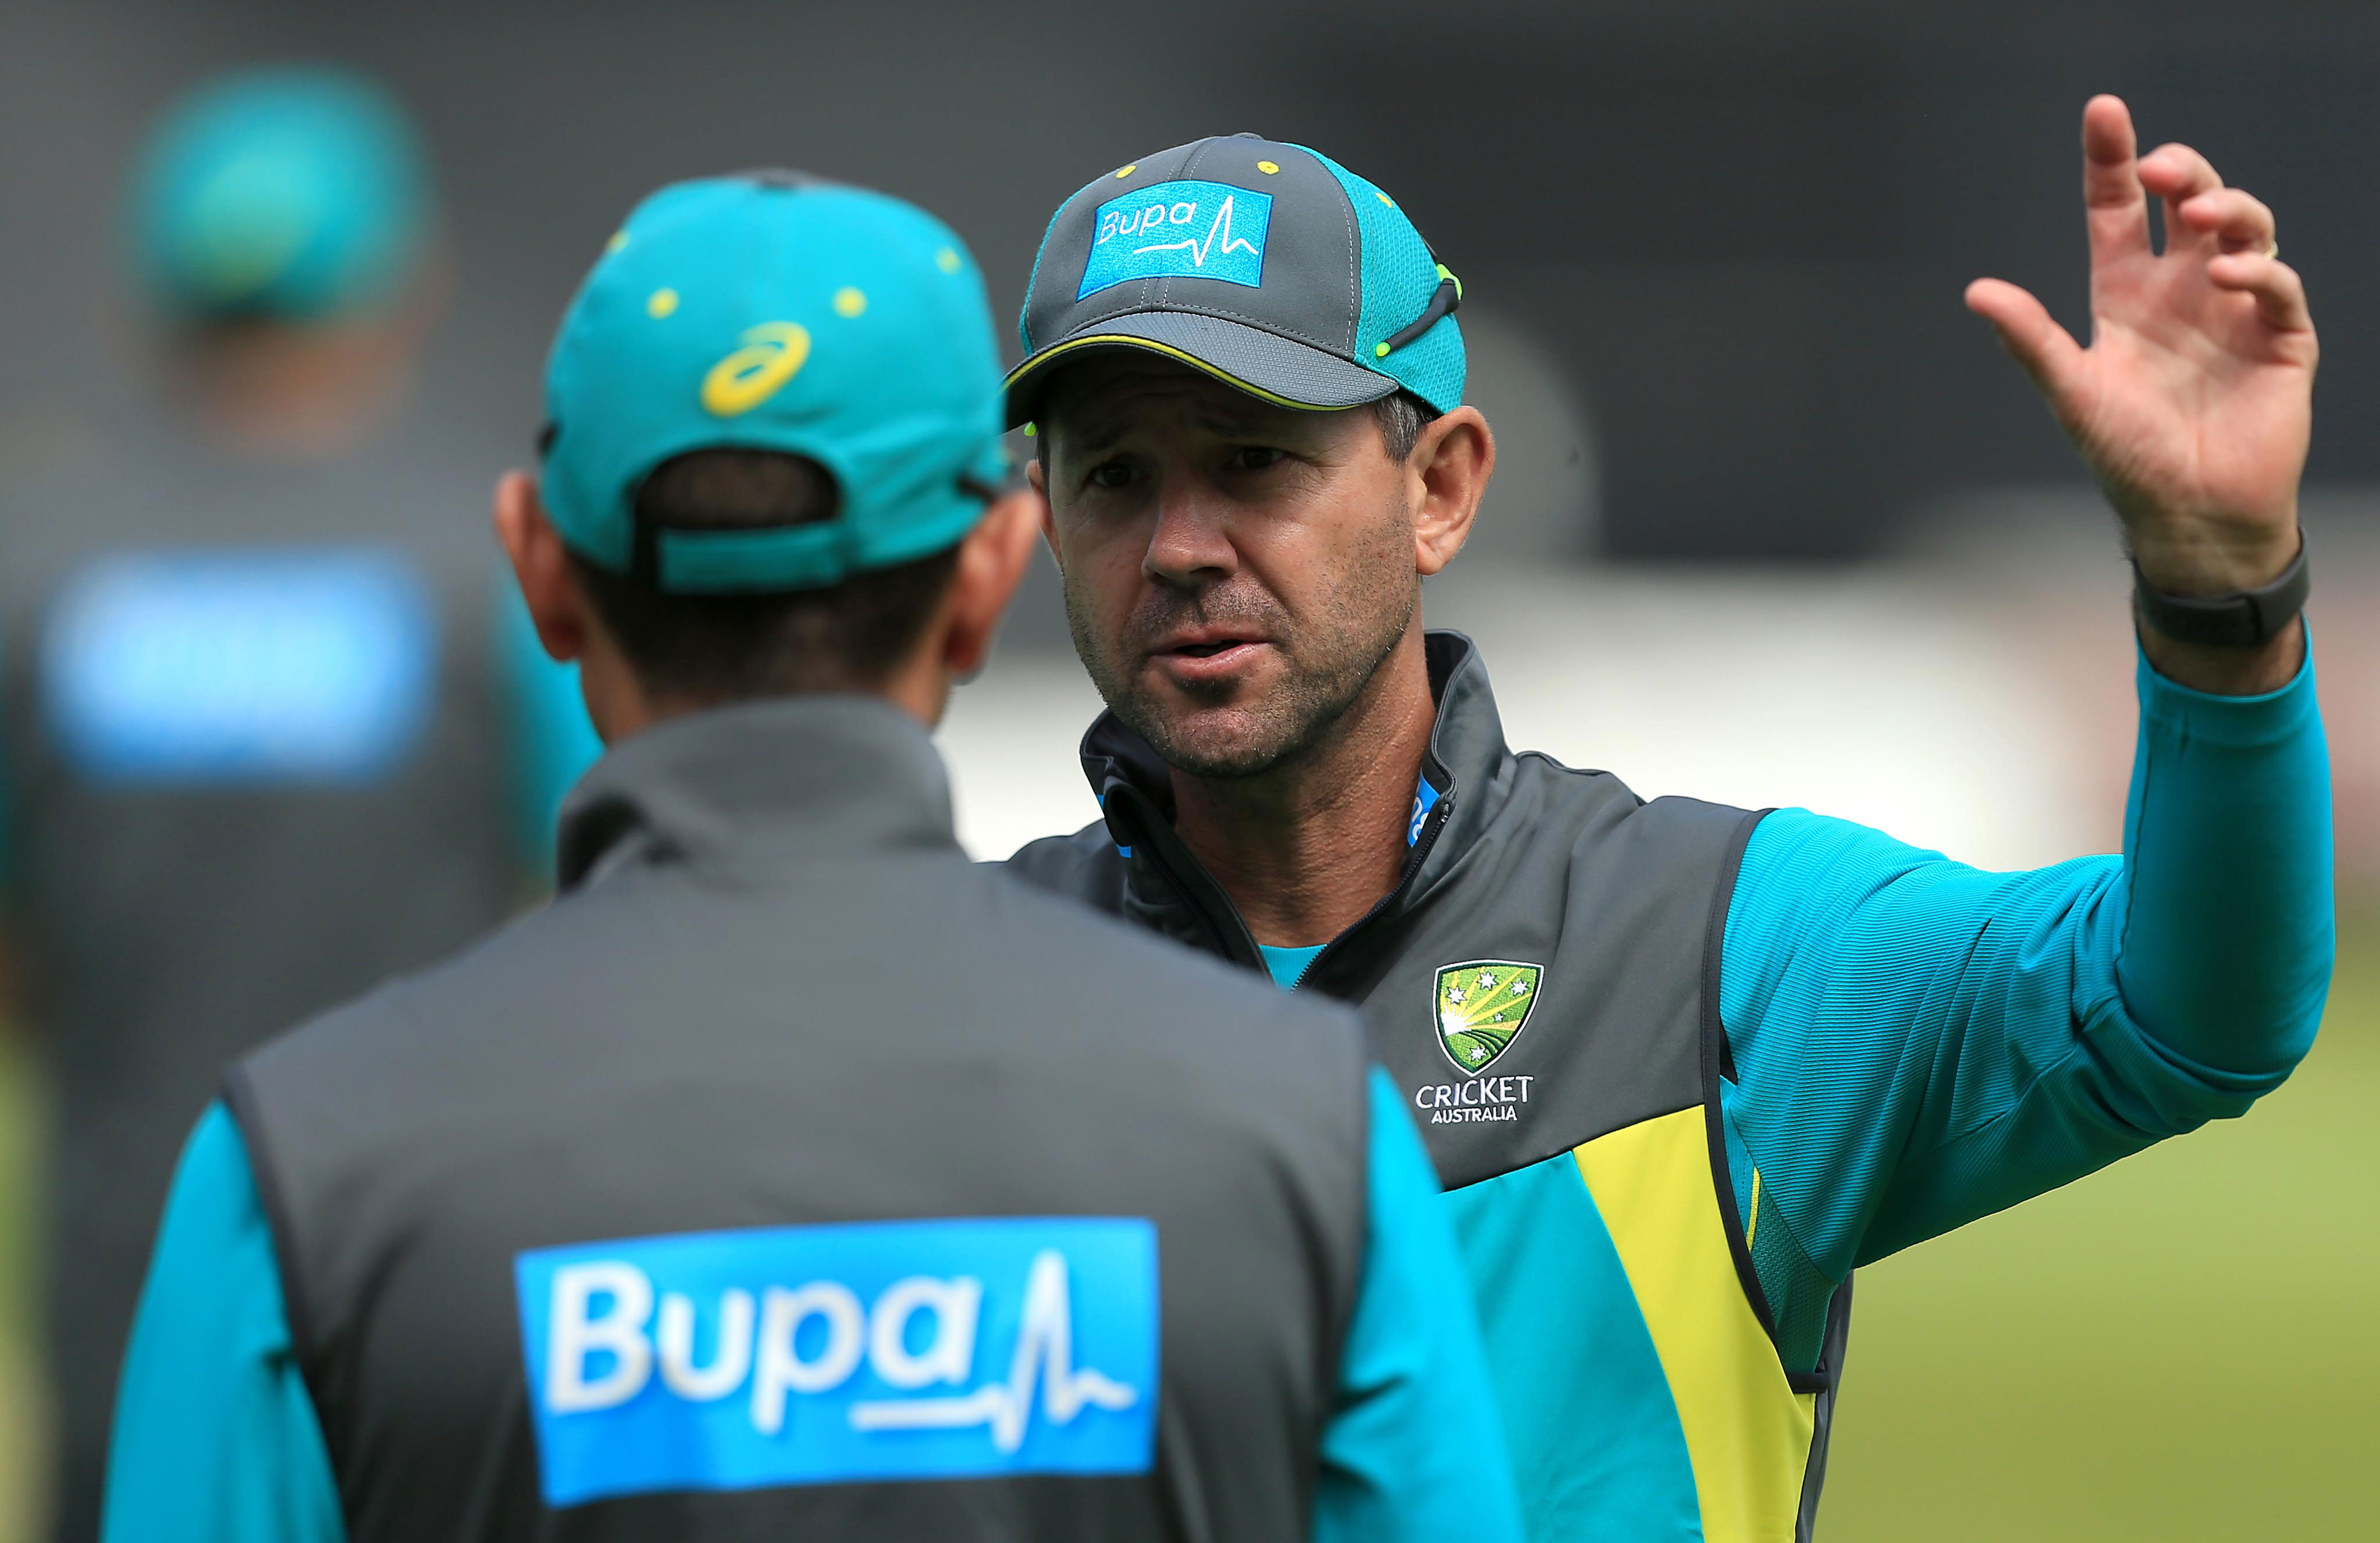 India's trouble can be swing on Australia tour: Ponting